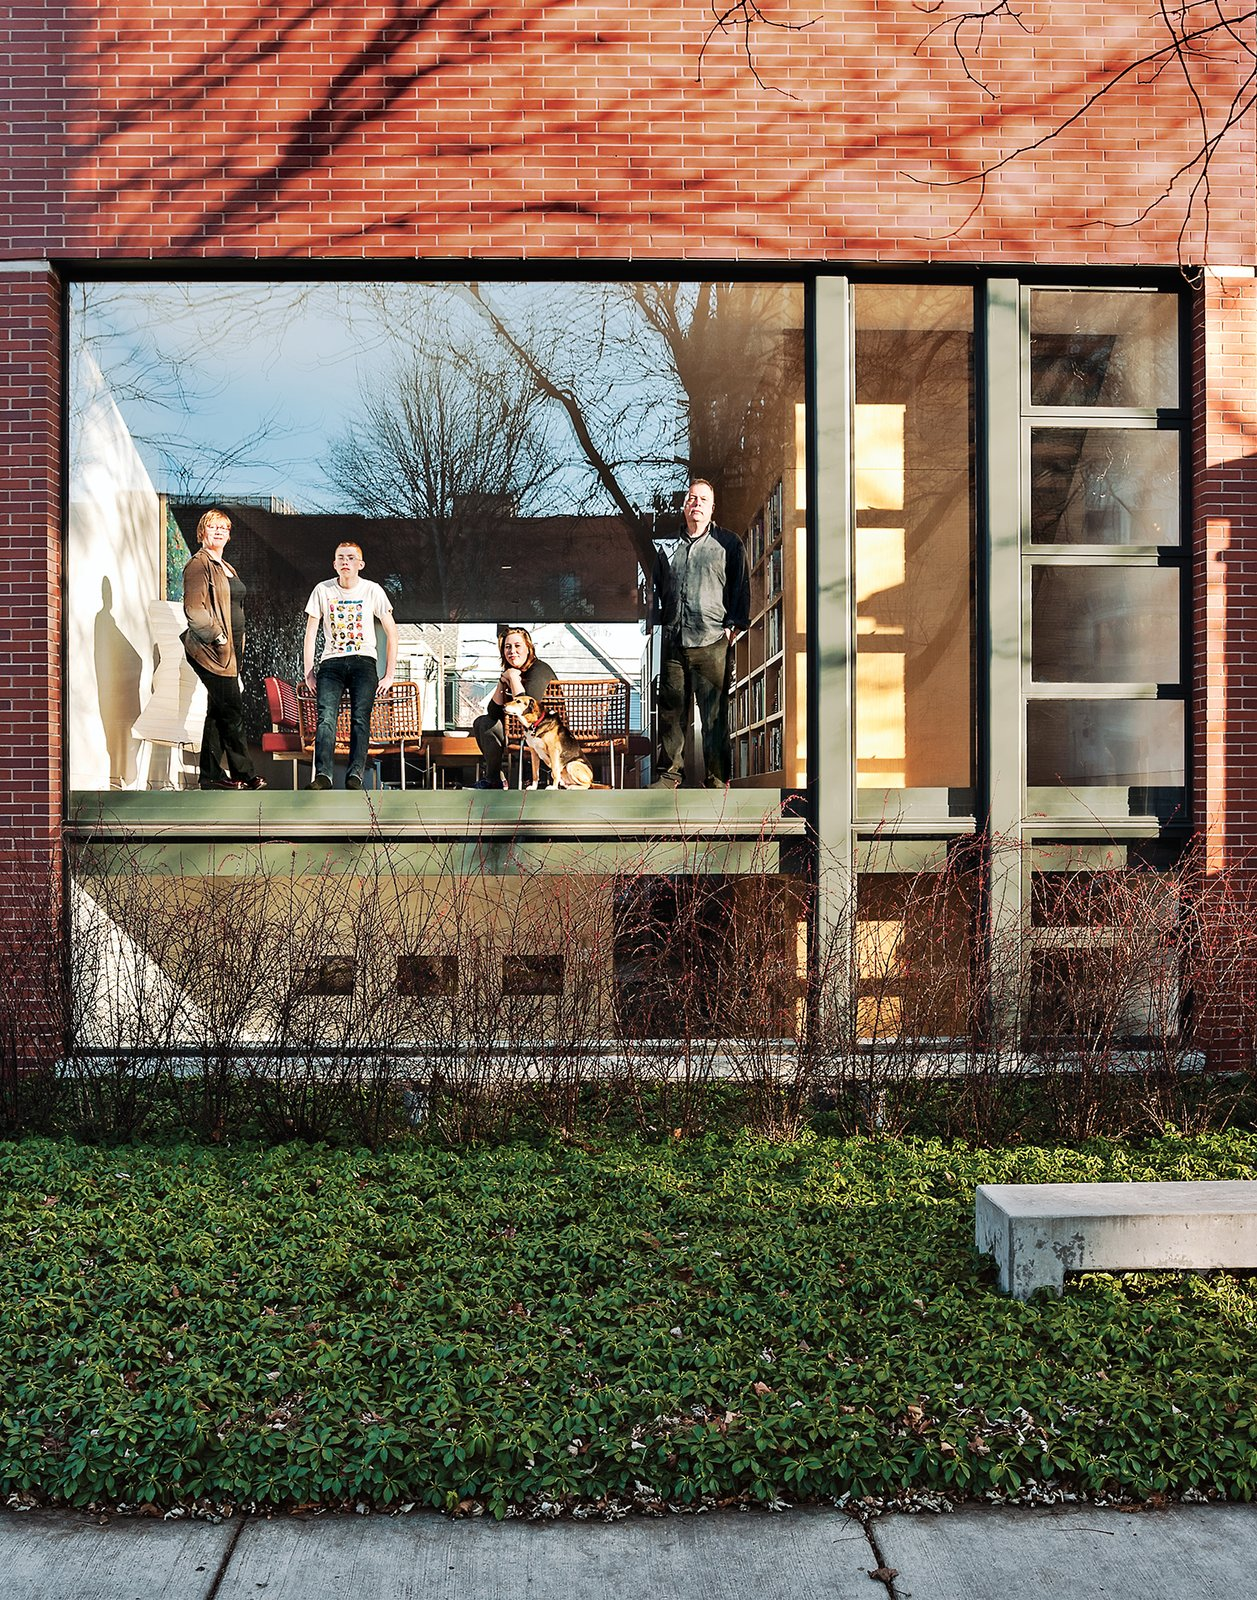 Chicago architect Brad Lynch demolished the 1940s bungalow he'd been sharing with his family for nearly two decades, and in its place built a brick-clad structure that would function as a modern counterpoint to its more traditional neighbors.  Renovations by Aiko Genest from A Brick-Clad Modern Family Home in Chicago